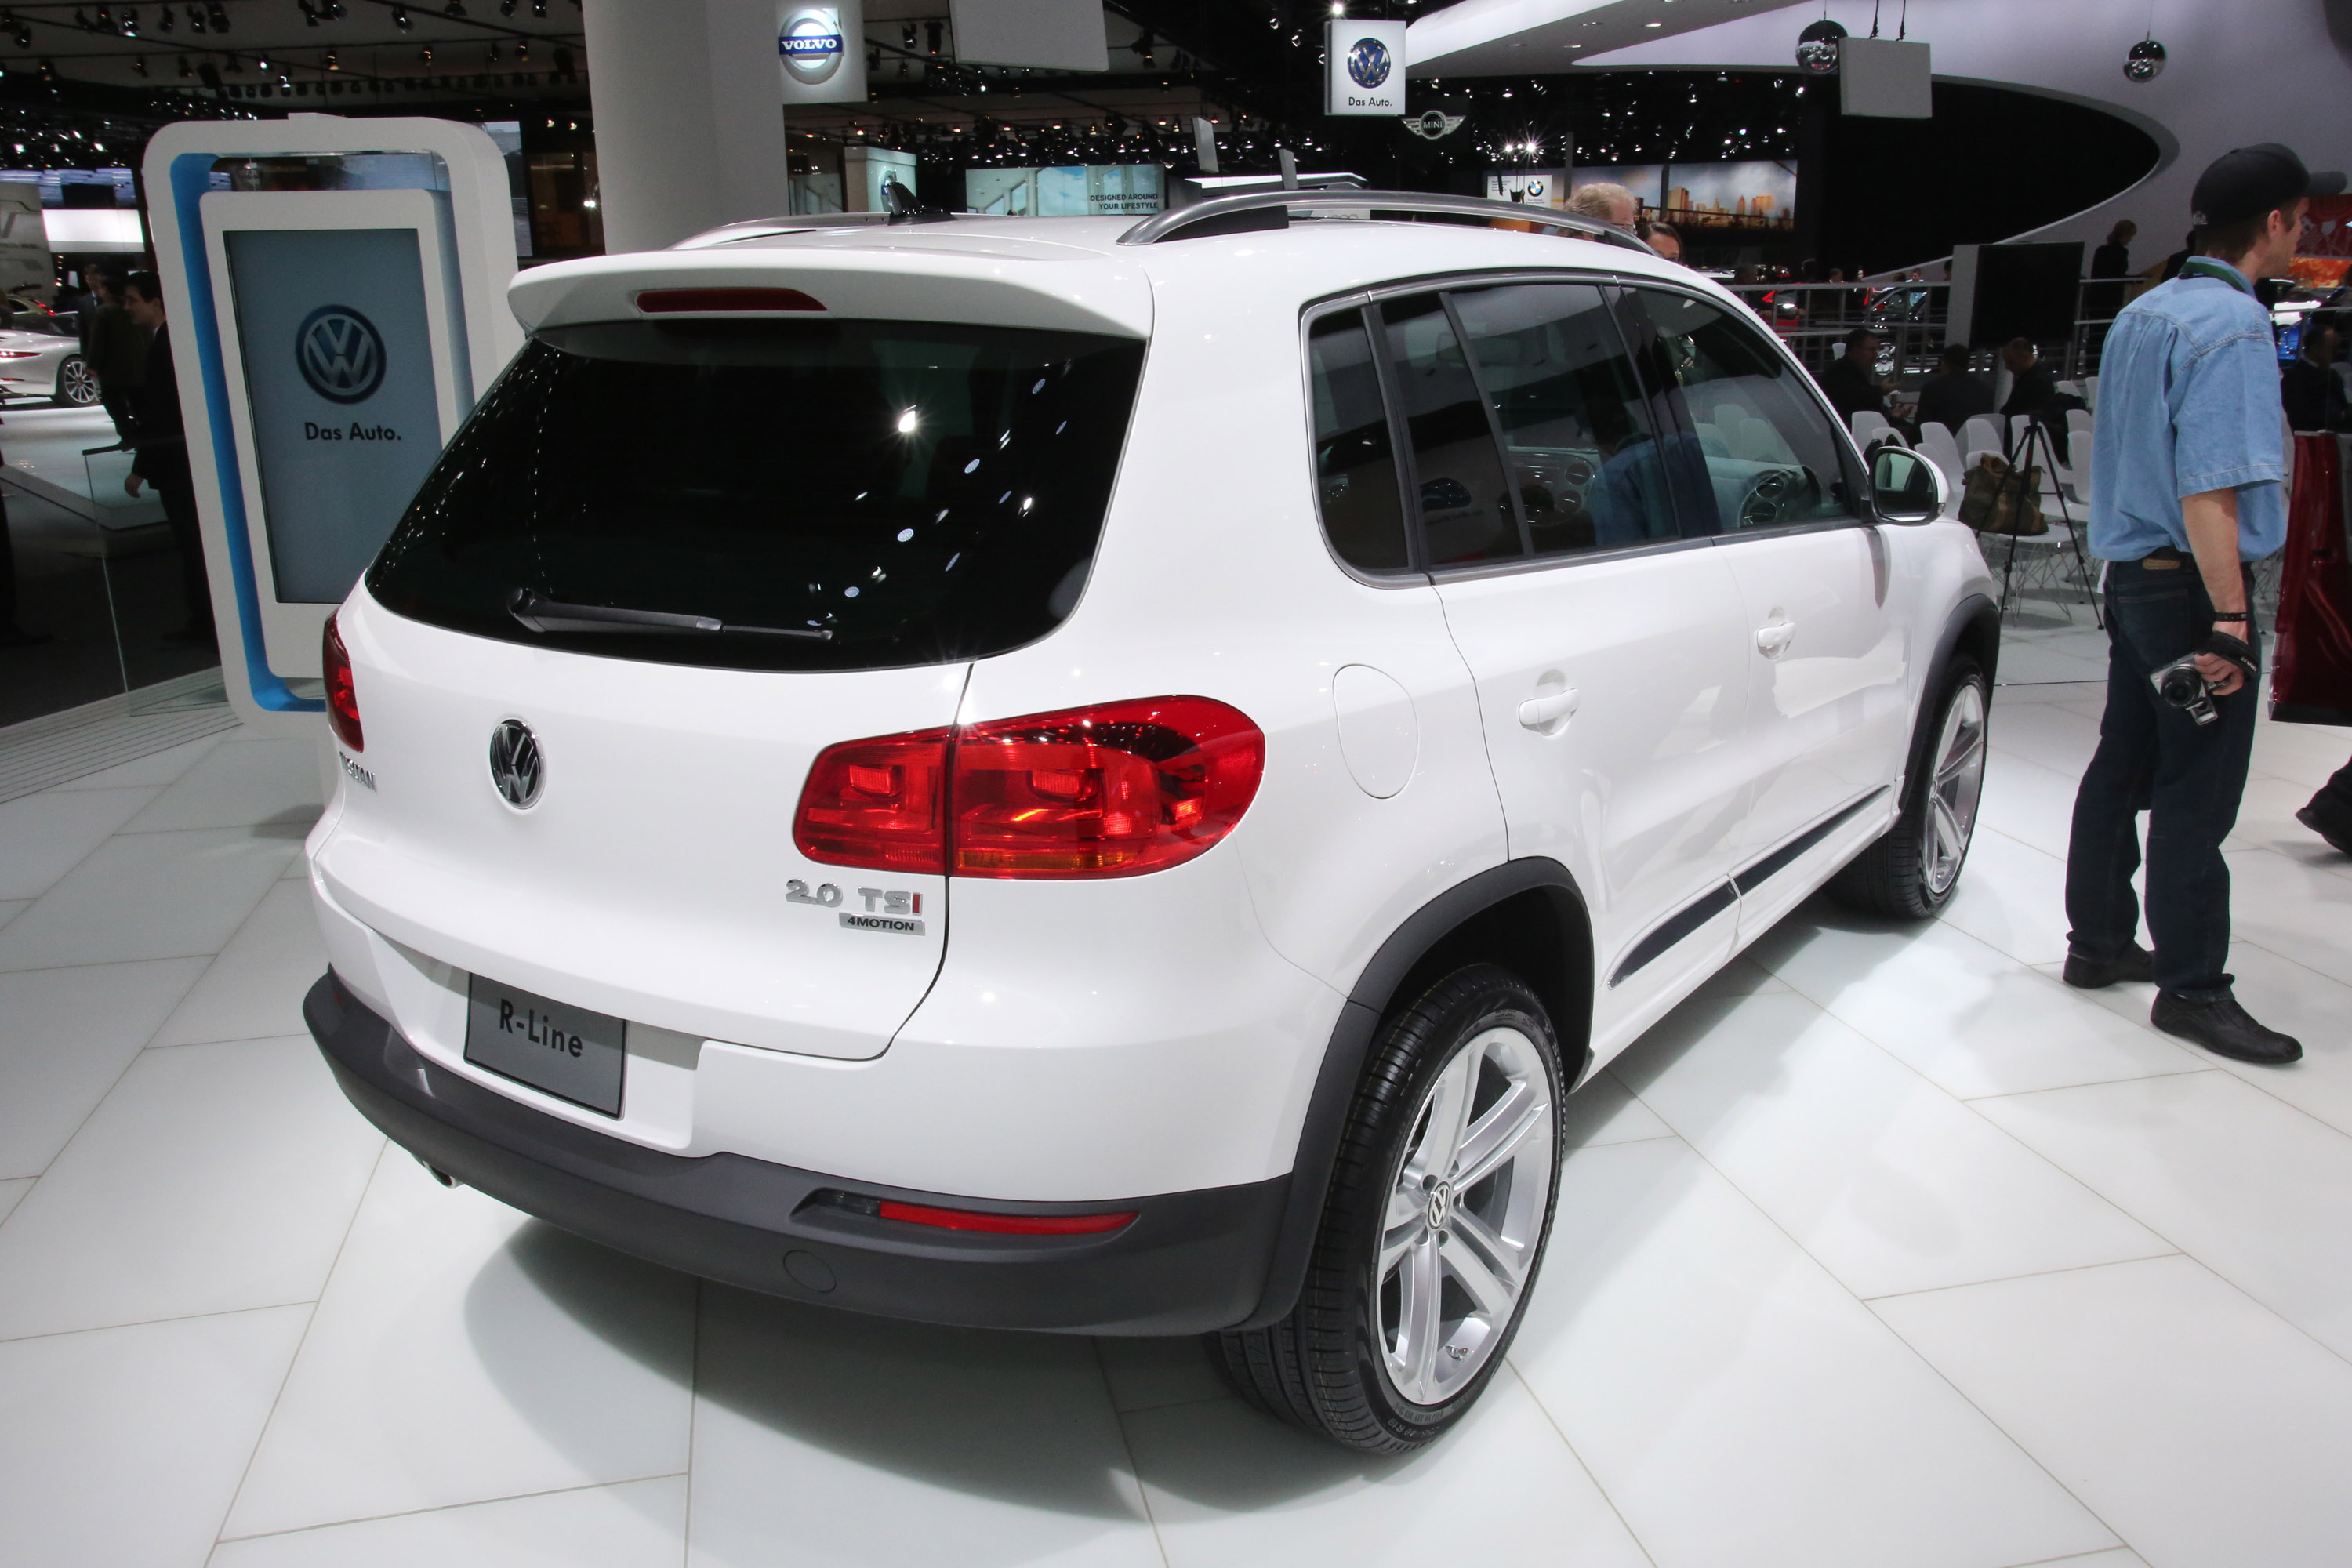 volkswagen tiguan r line detroit 2013 picture 79828. Black Bedroom Furniture Sets. Home Design Ideas